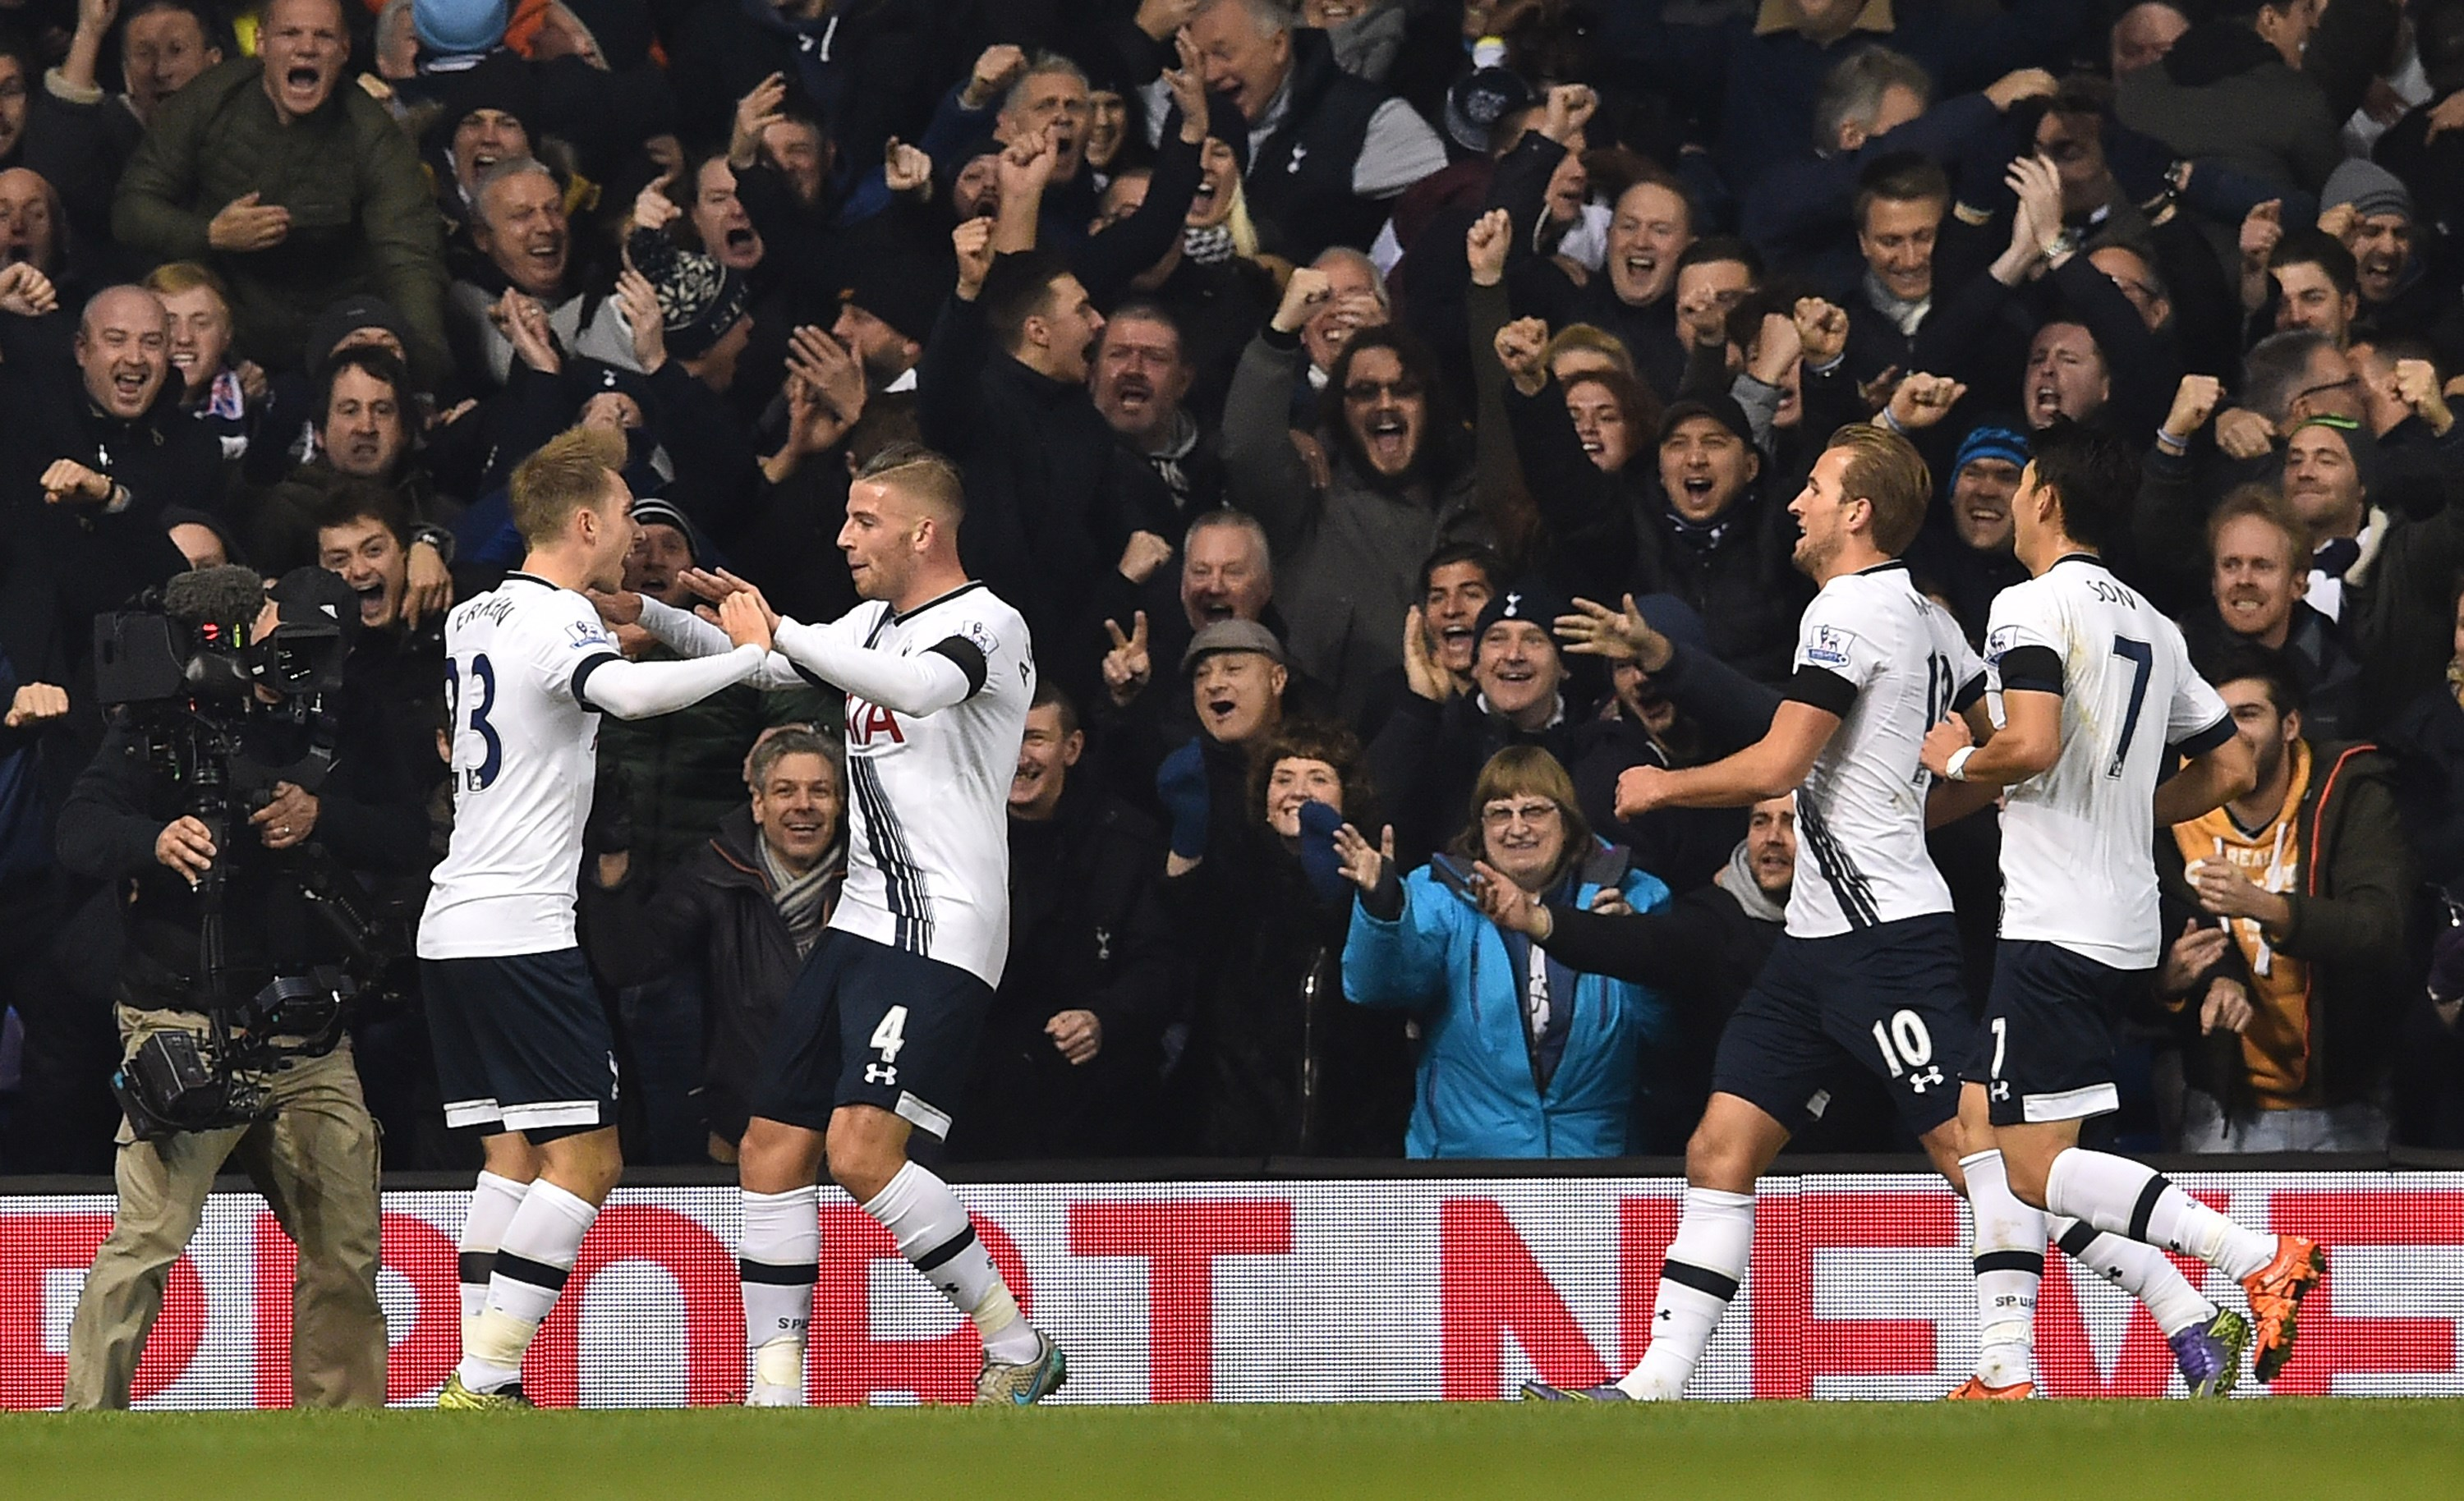 Six glorious positives from Tottenham's 4-1 dismantling of West Ham